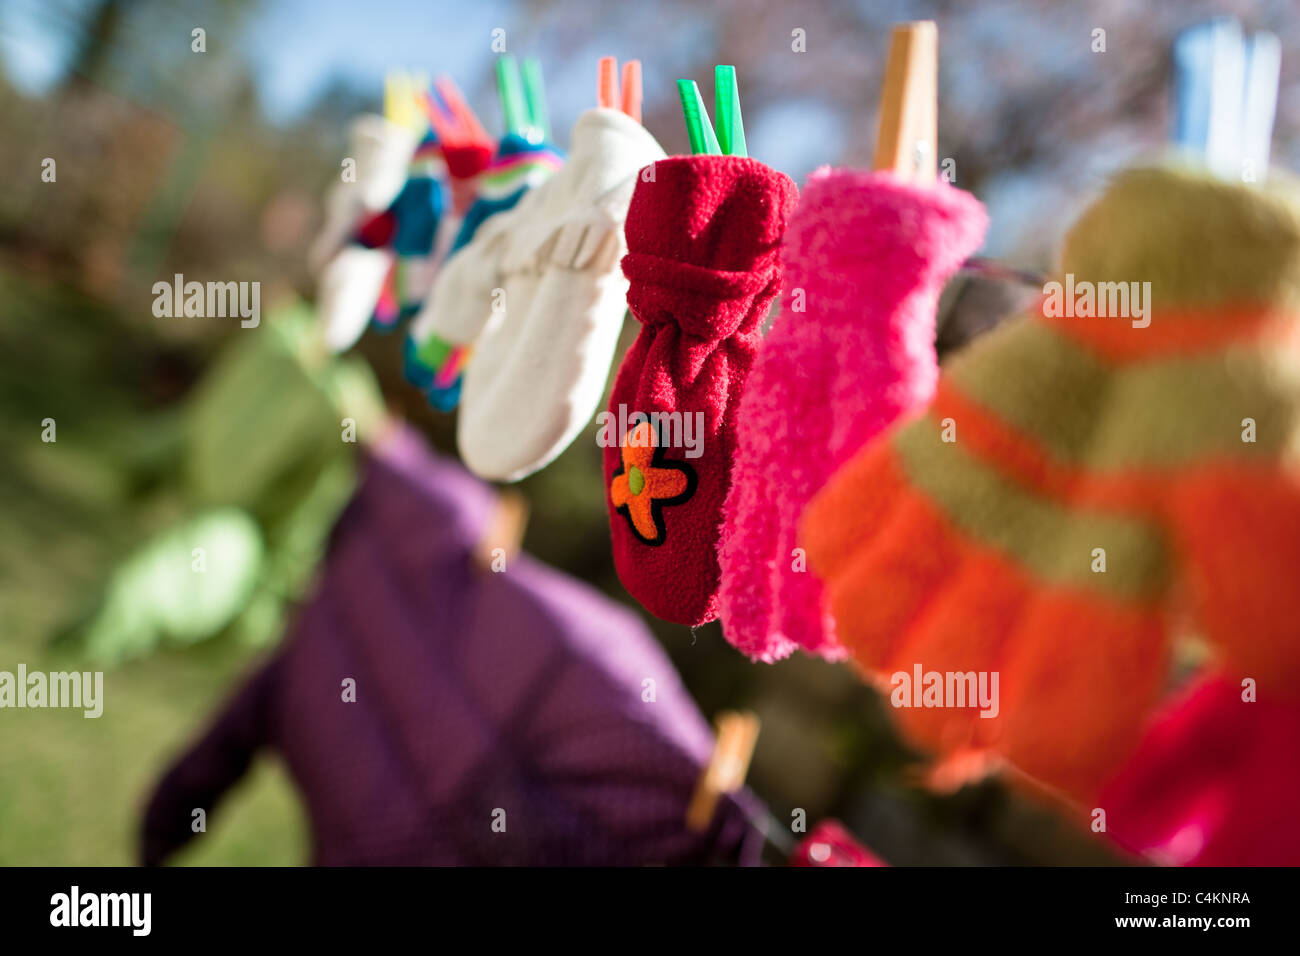 Colorful kid gloves hanging on a washing line in the backyard of an apartment house, Czech Republic. - Stock Image